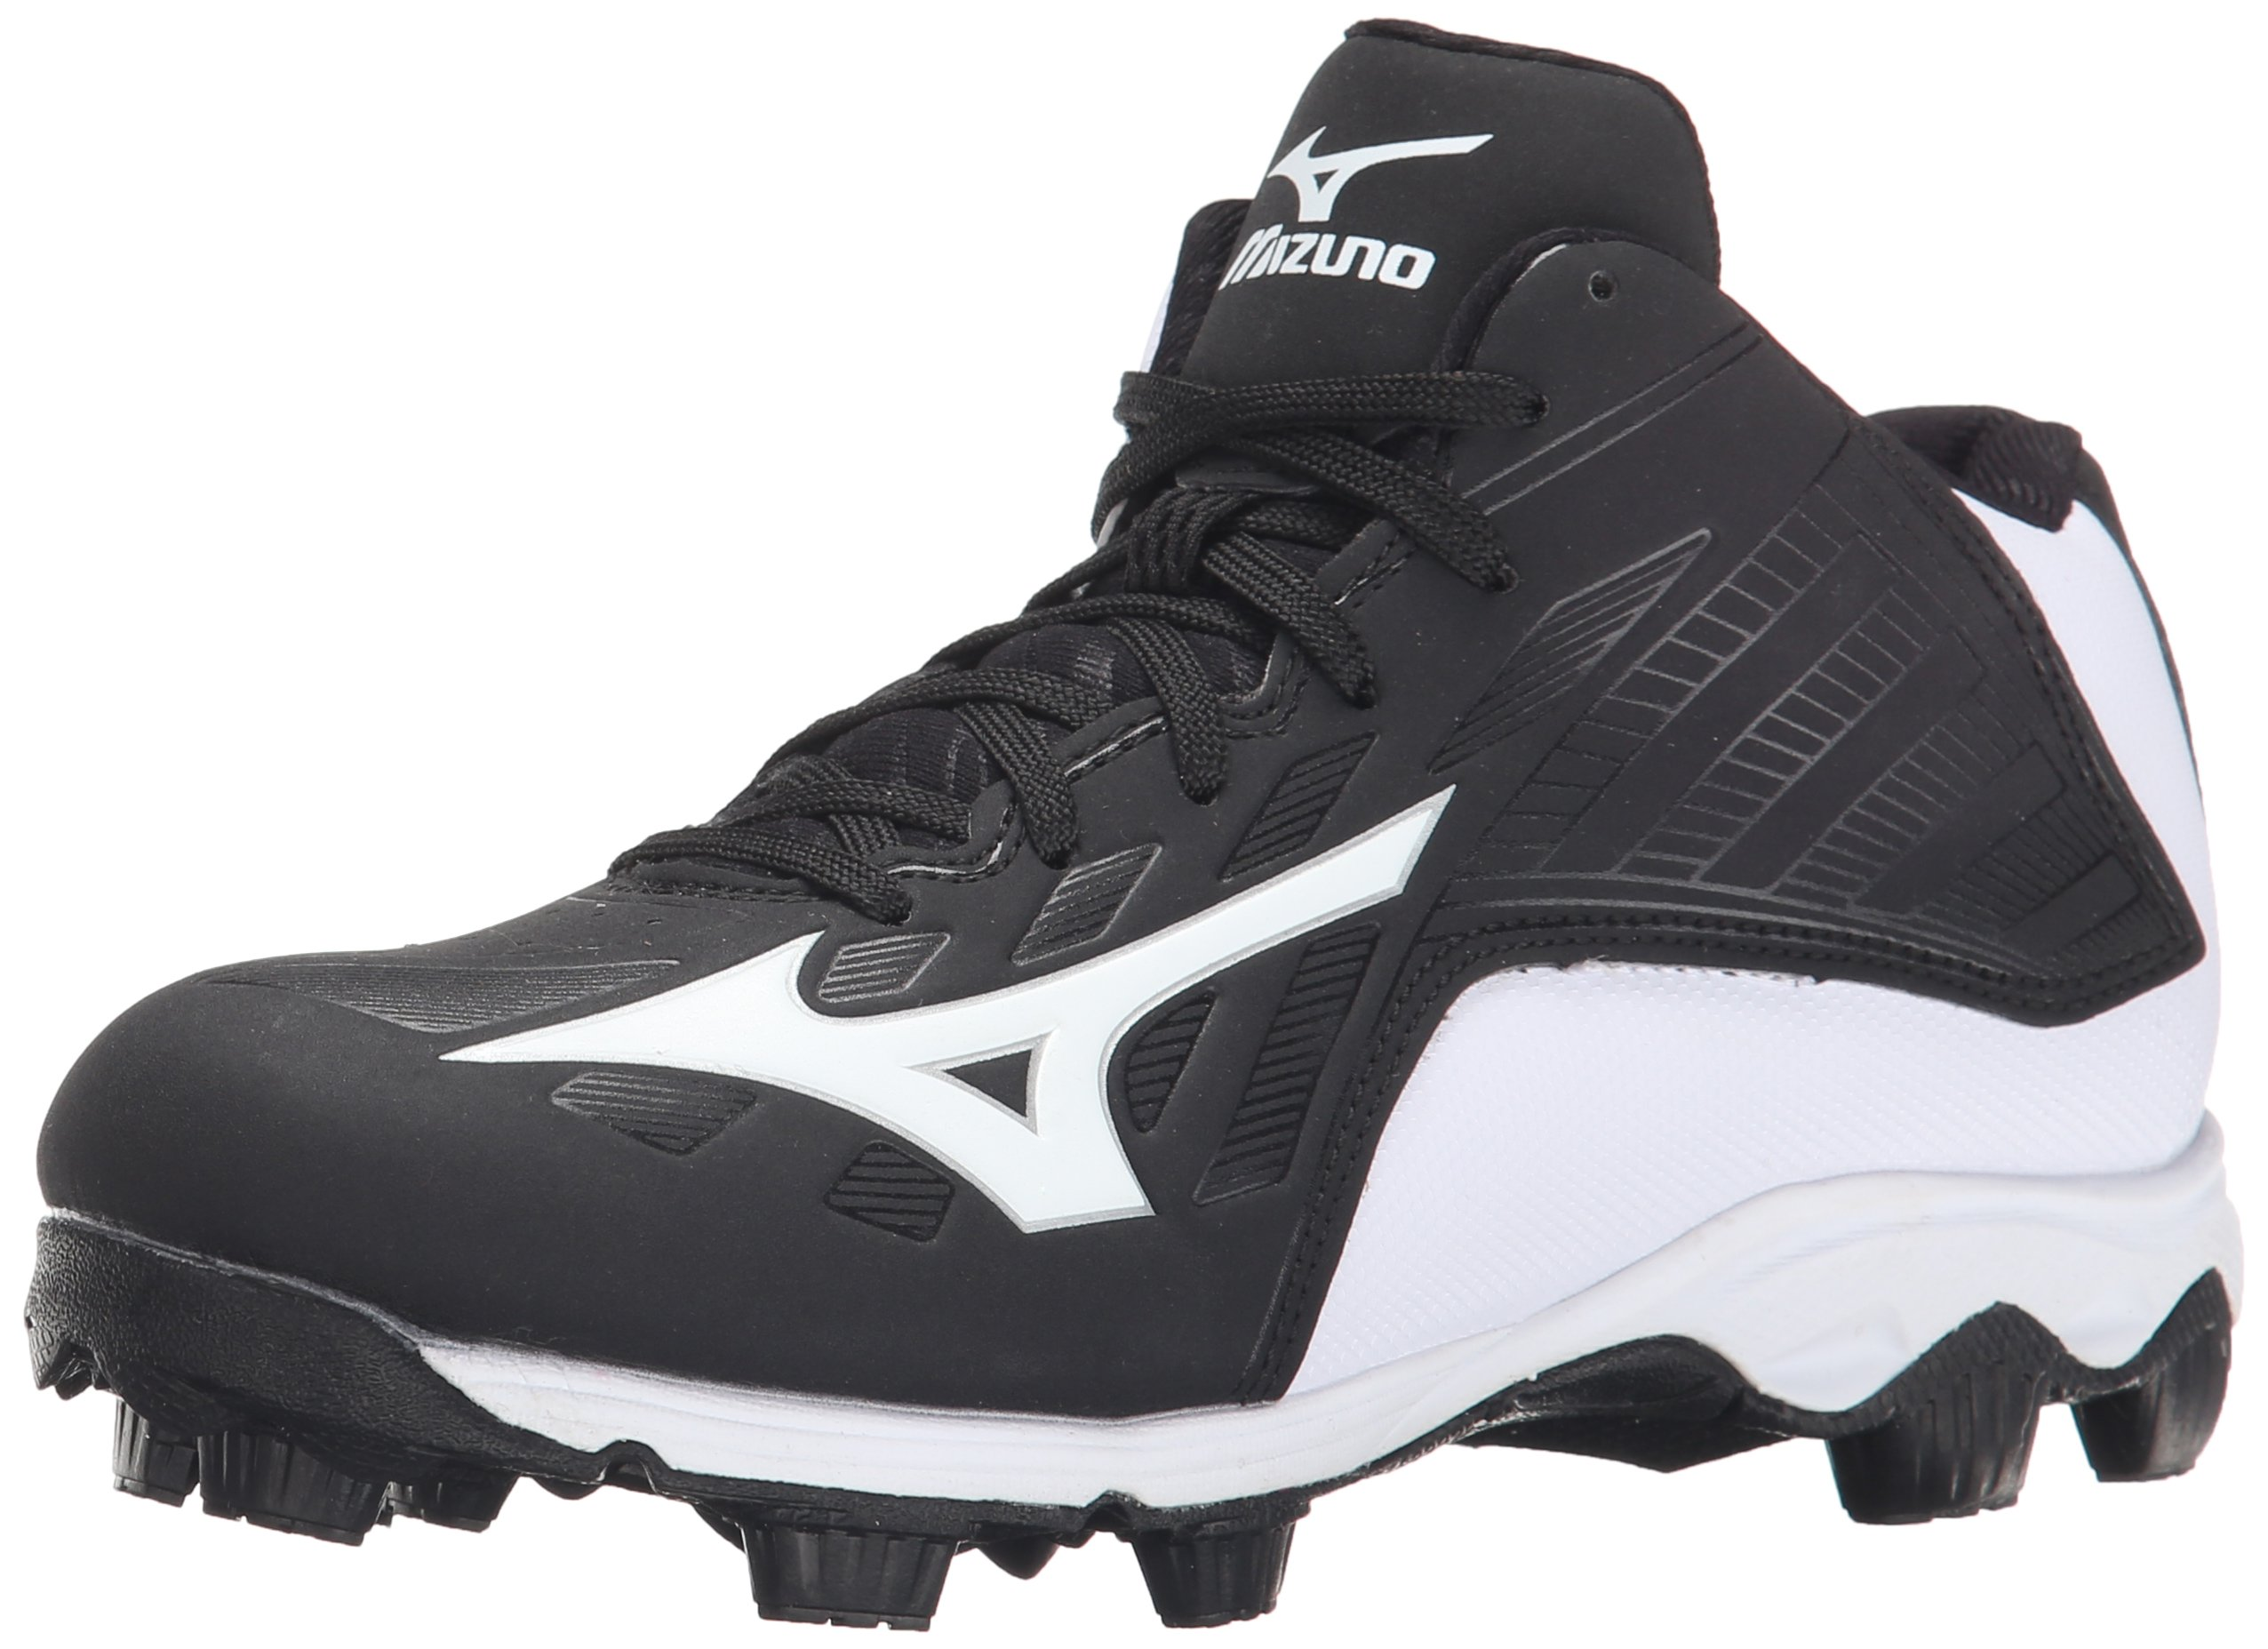 Mizuno 9 Spike ADV YTH FRHSE8 MD BK-WH Youth Molded Cleat (Little Kid/Big Kid), Black/White, 3.5 M US Big Kid